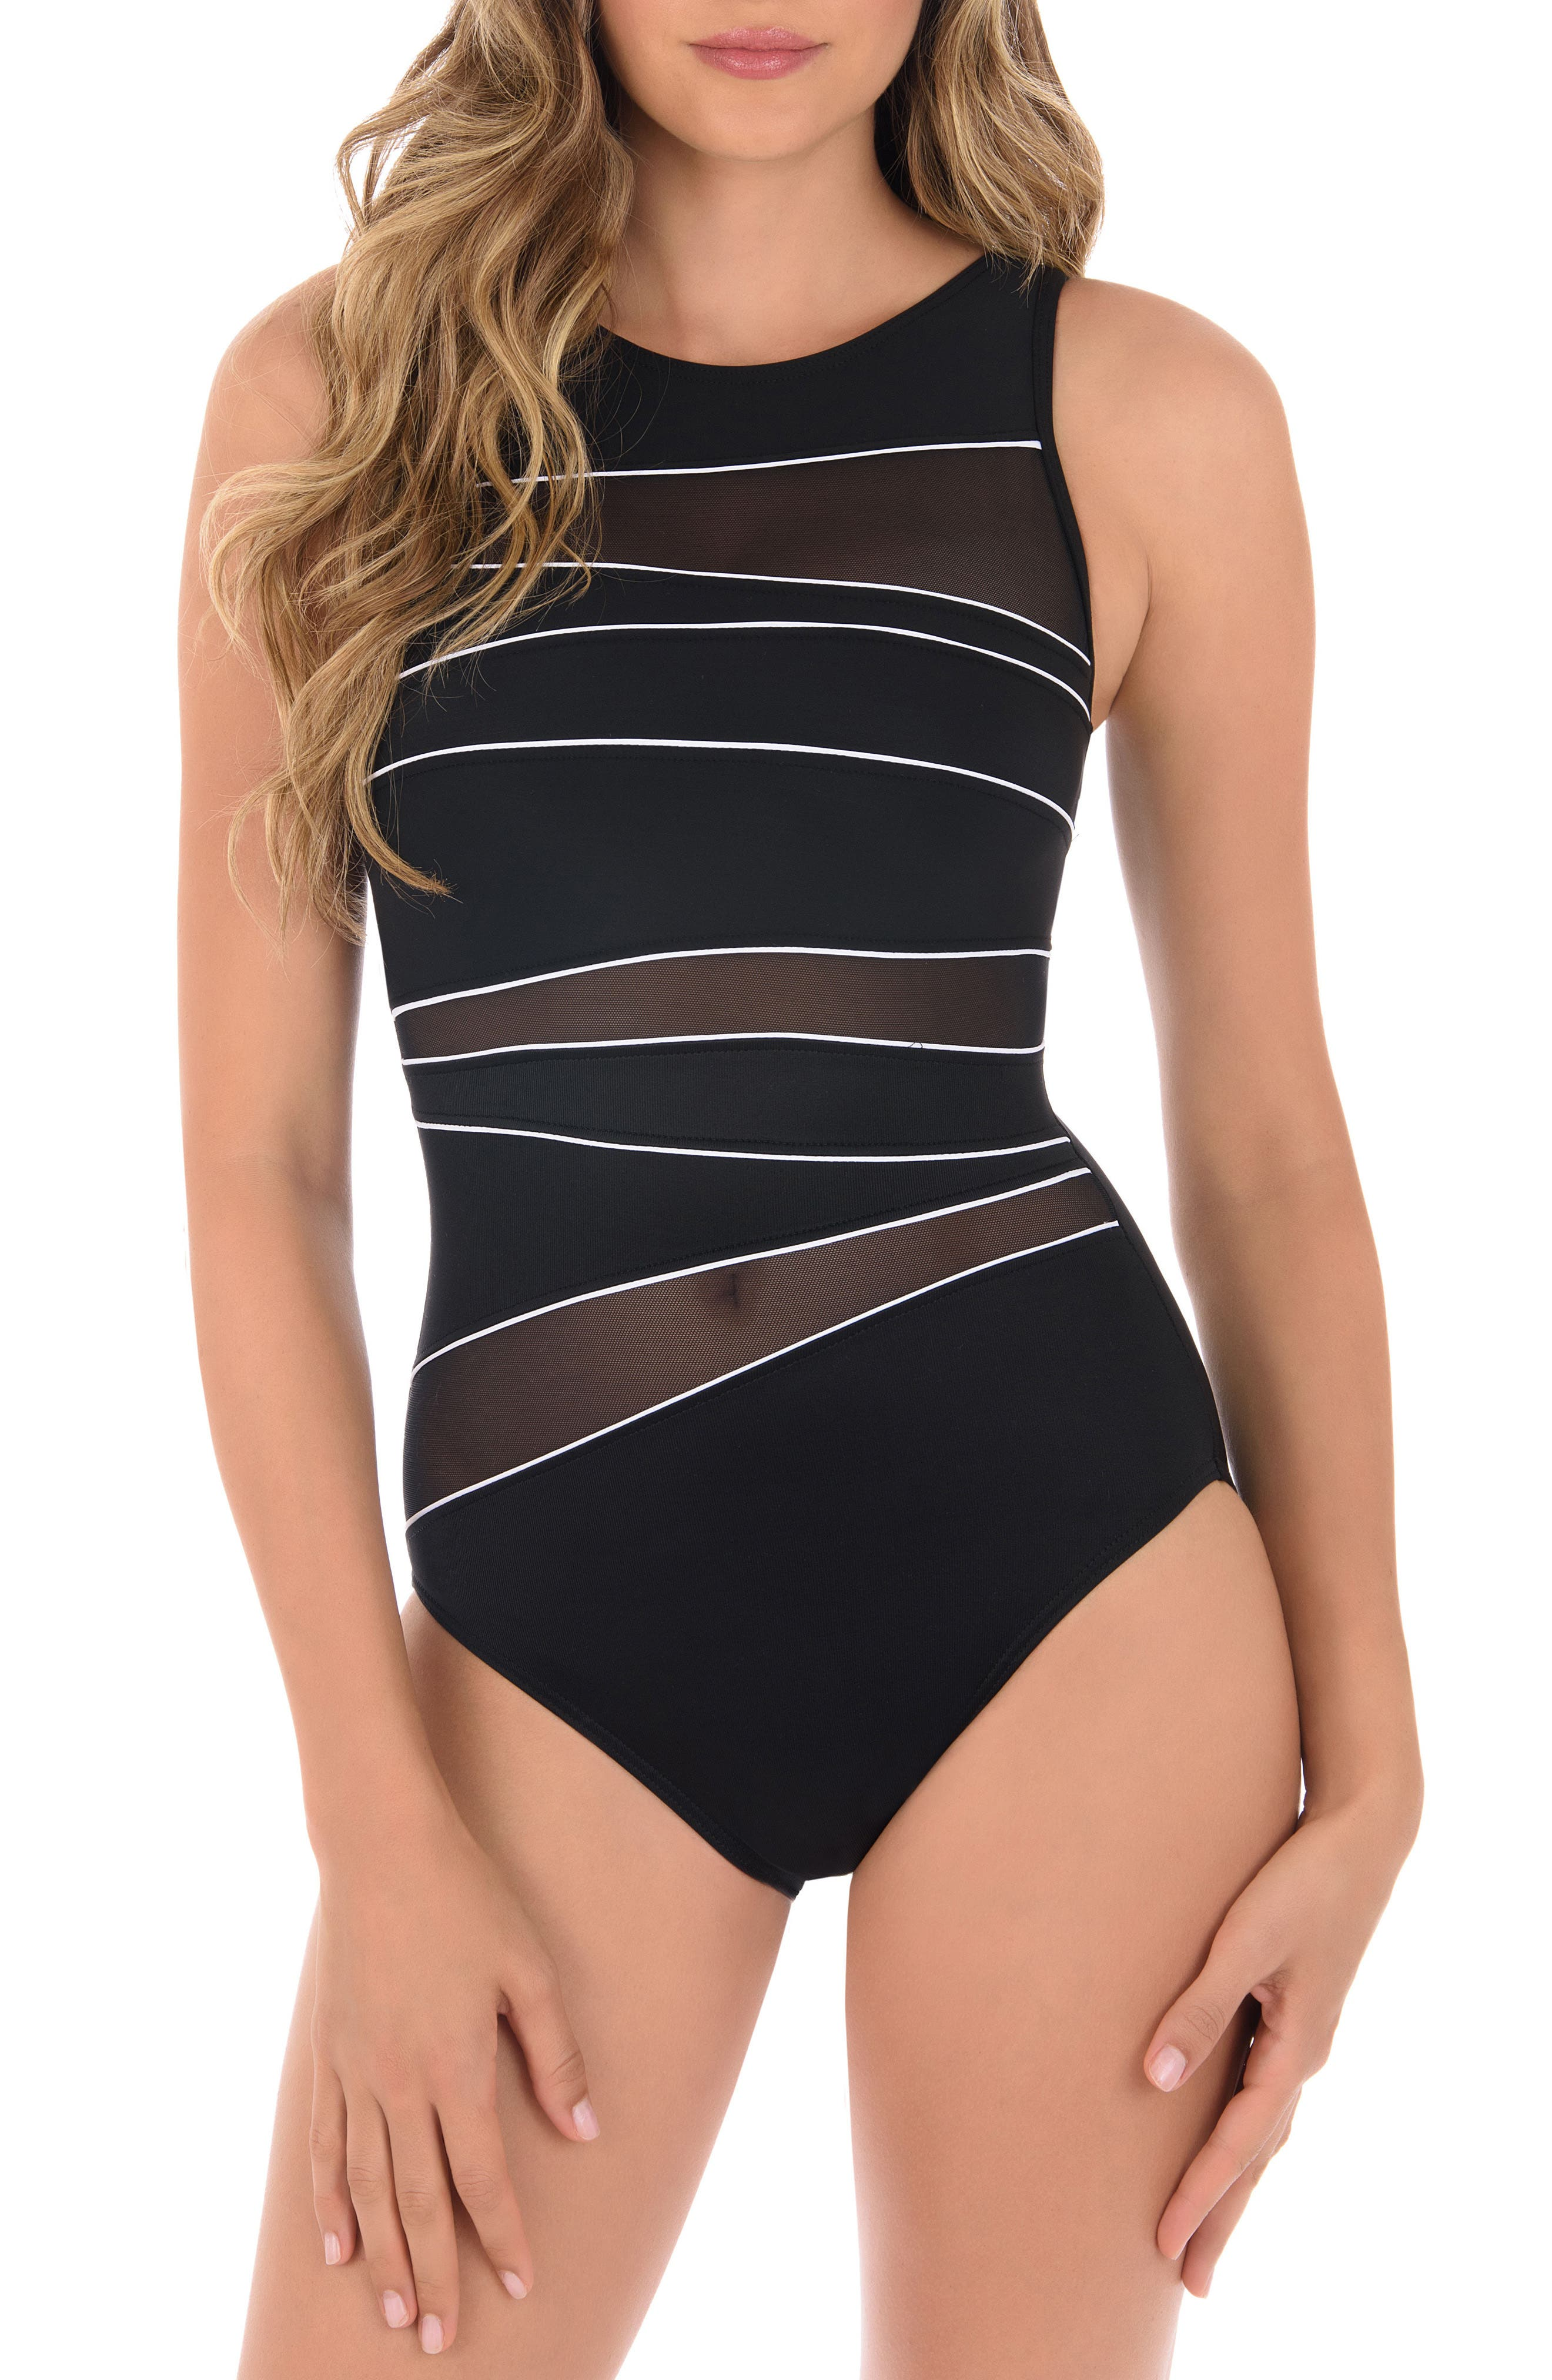 Spectra Somerset One-Piece Swimsuit,                             Main thumbnail 1, color,